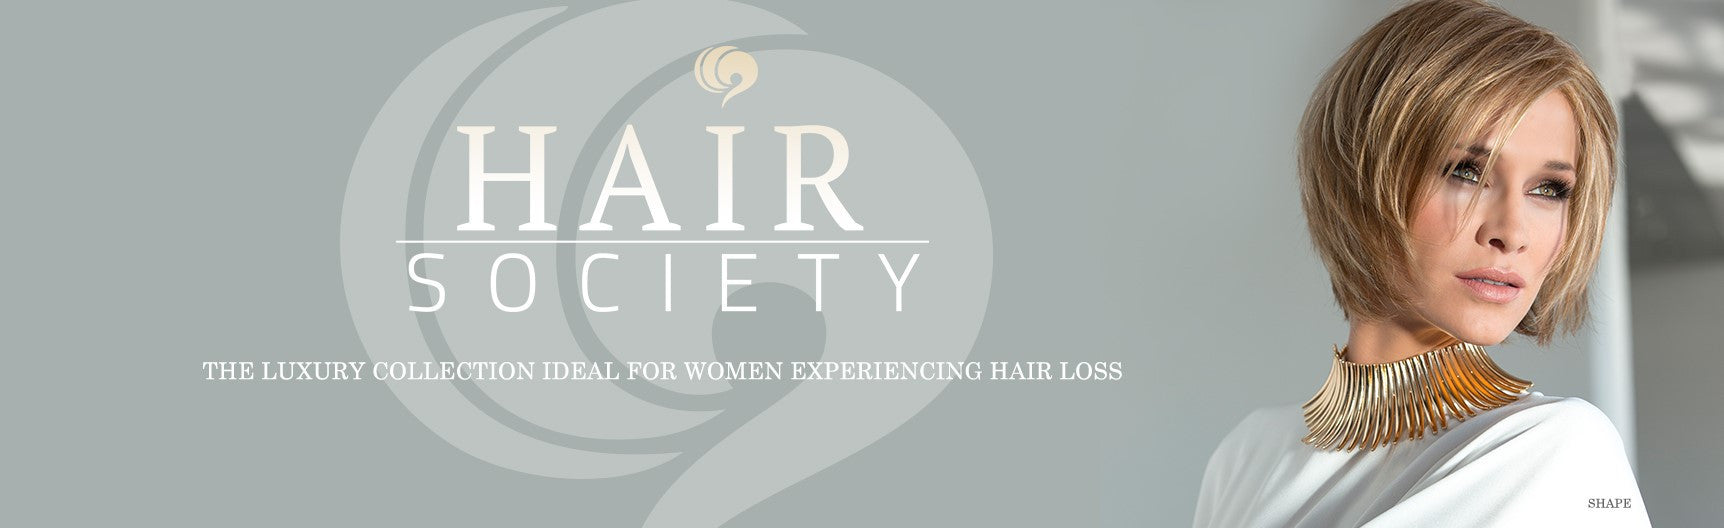 14 NEW Hair Society Luxury Collection by Ellen Wille